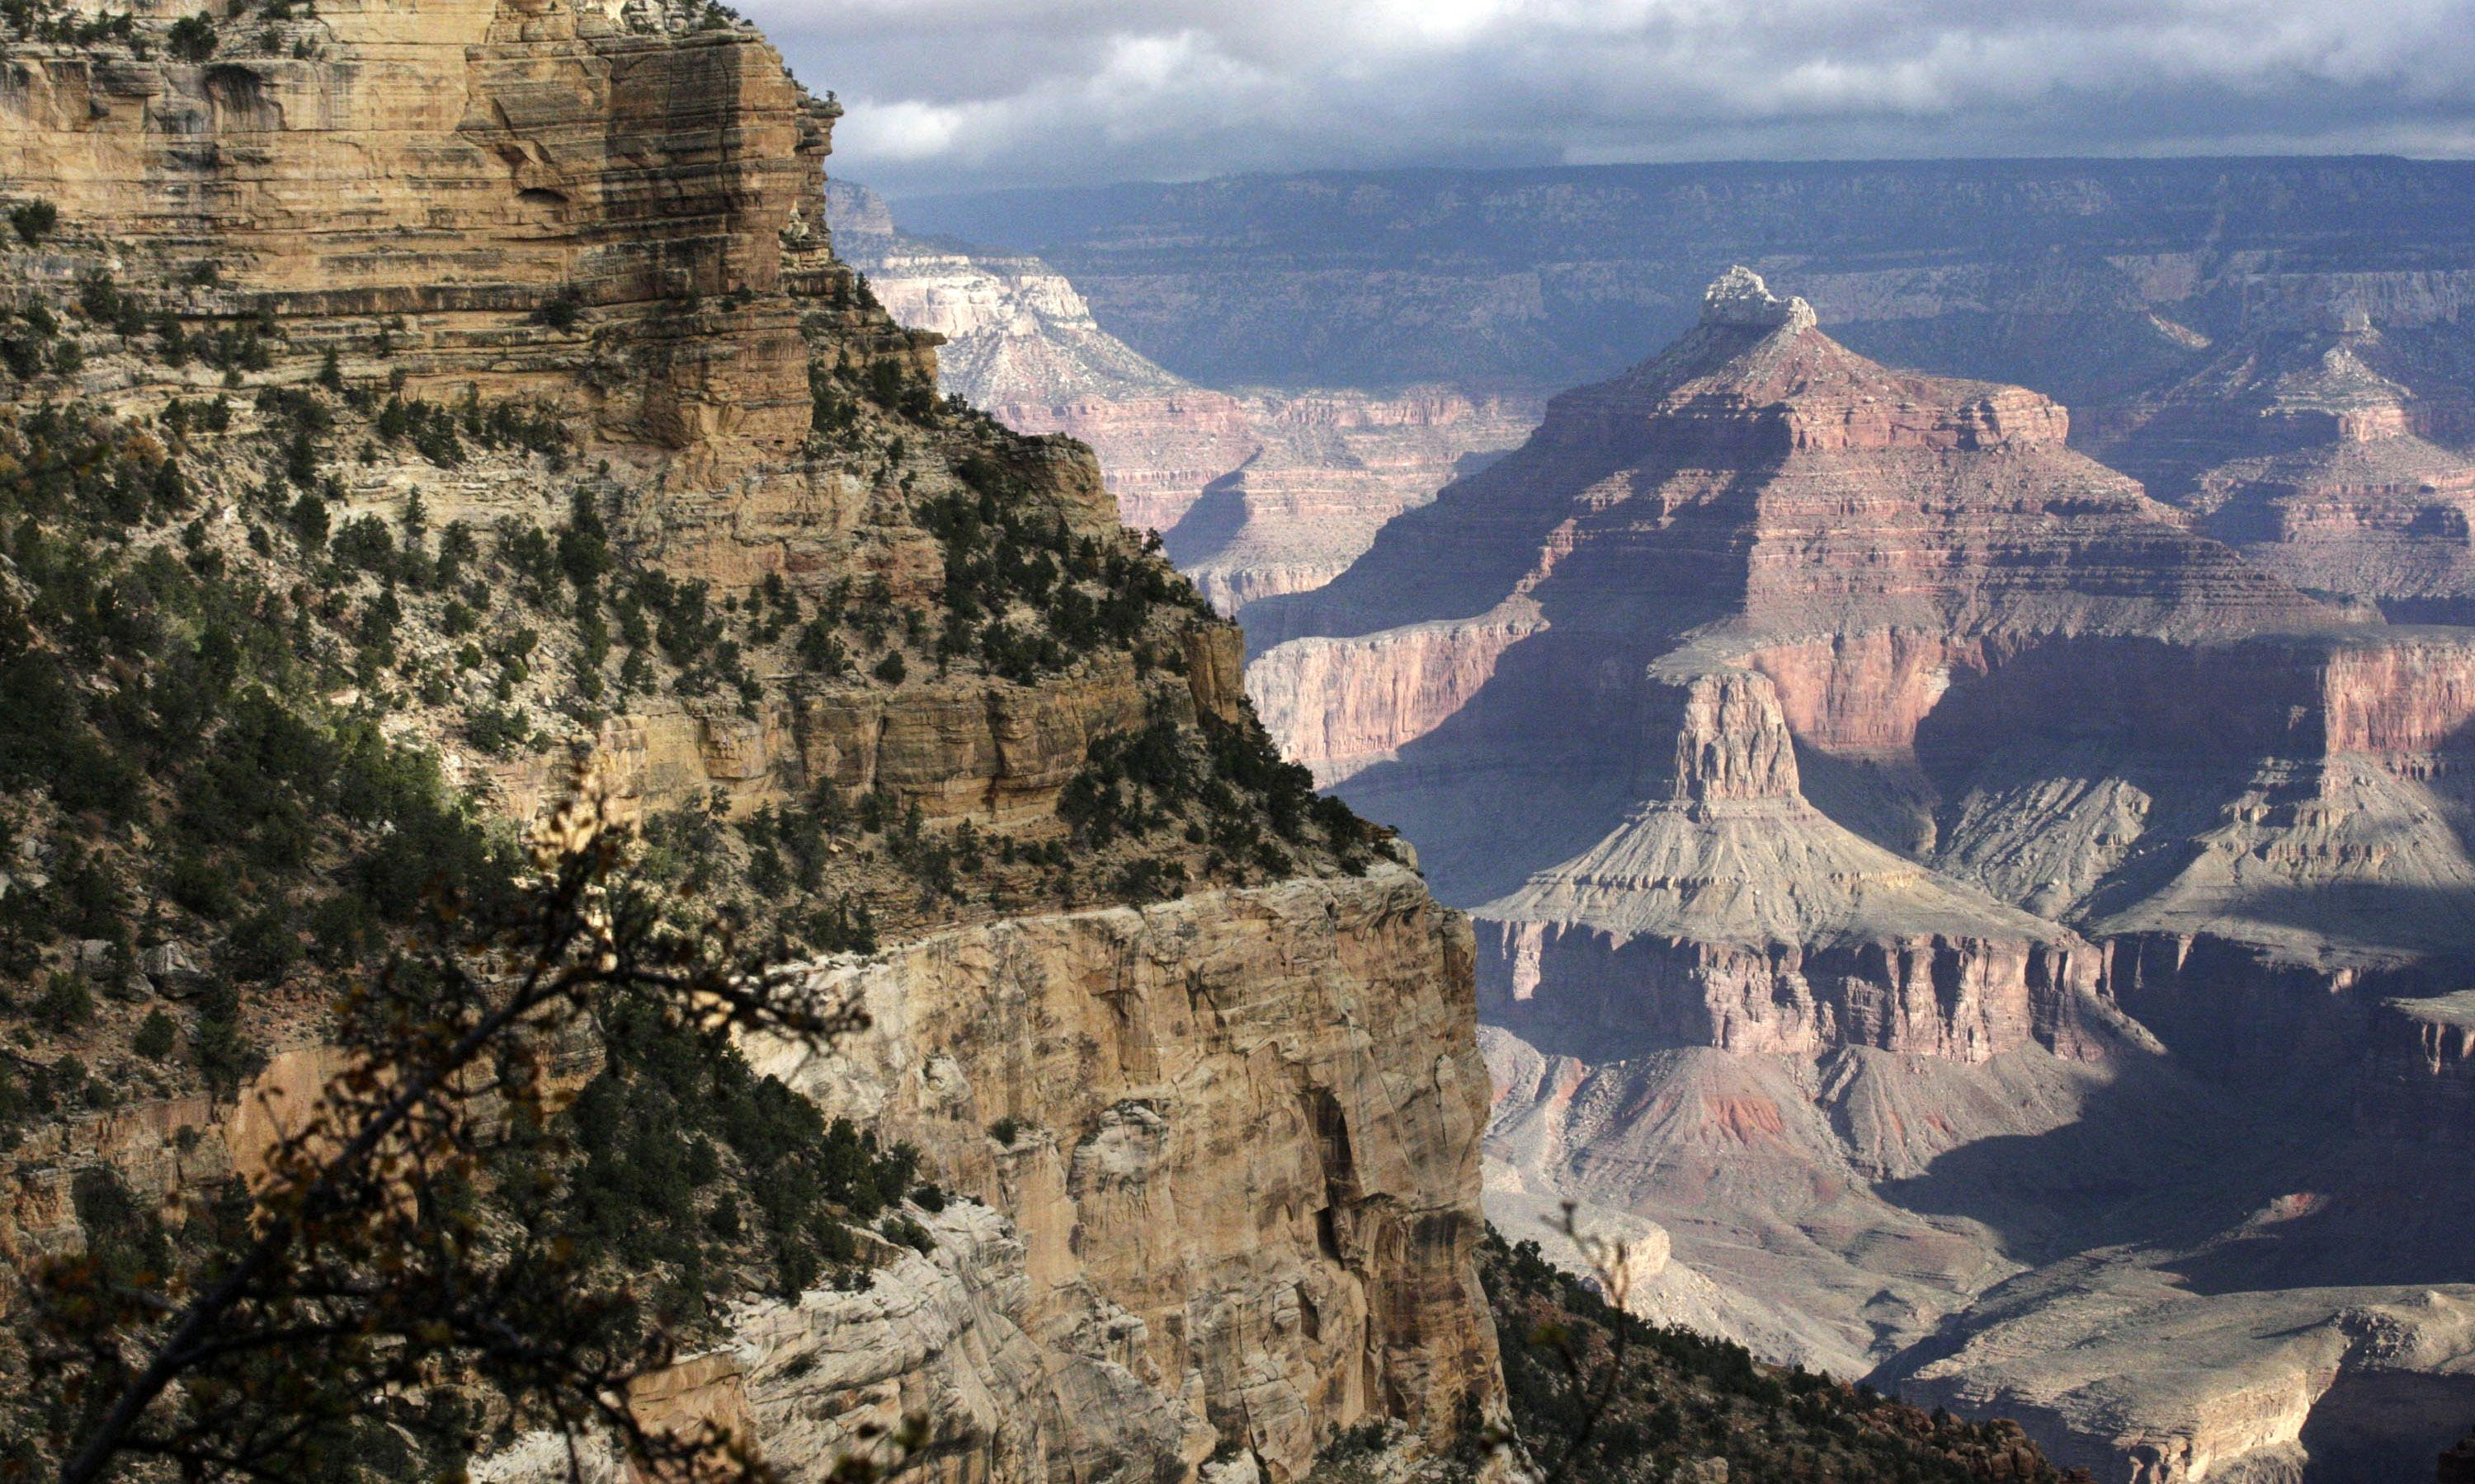 Company seeks rights to names of iconic Grand Canyon lodges